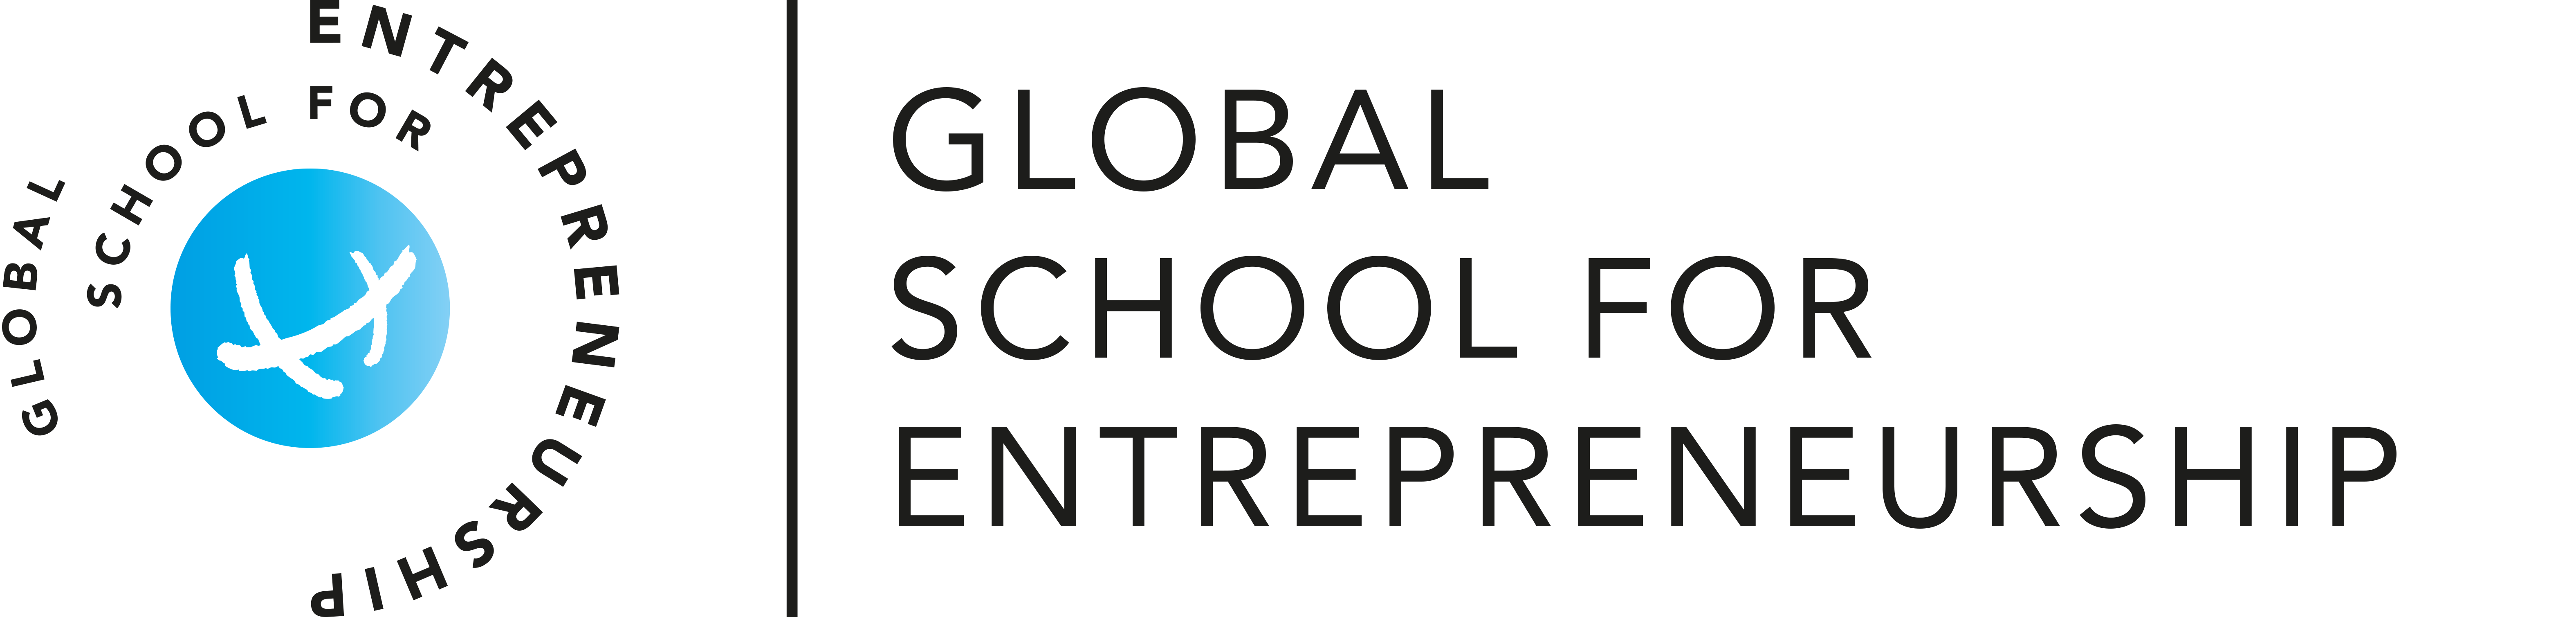 Global School for Entrepreneurship